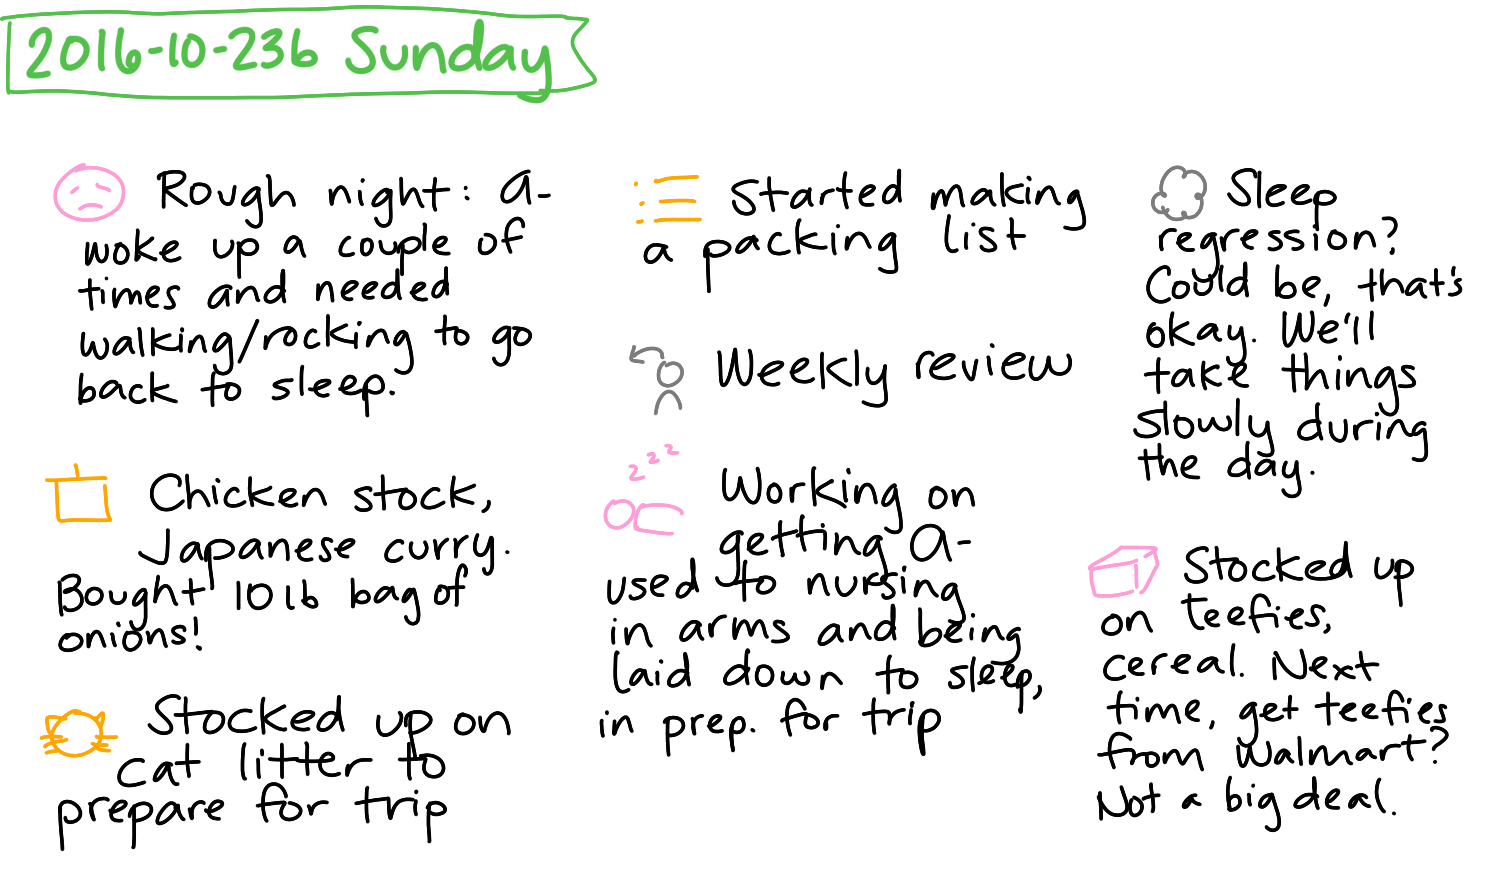 2016-10-23b Sunday #daily #journal.png